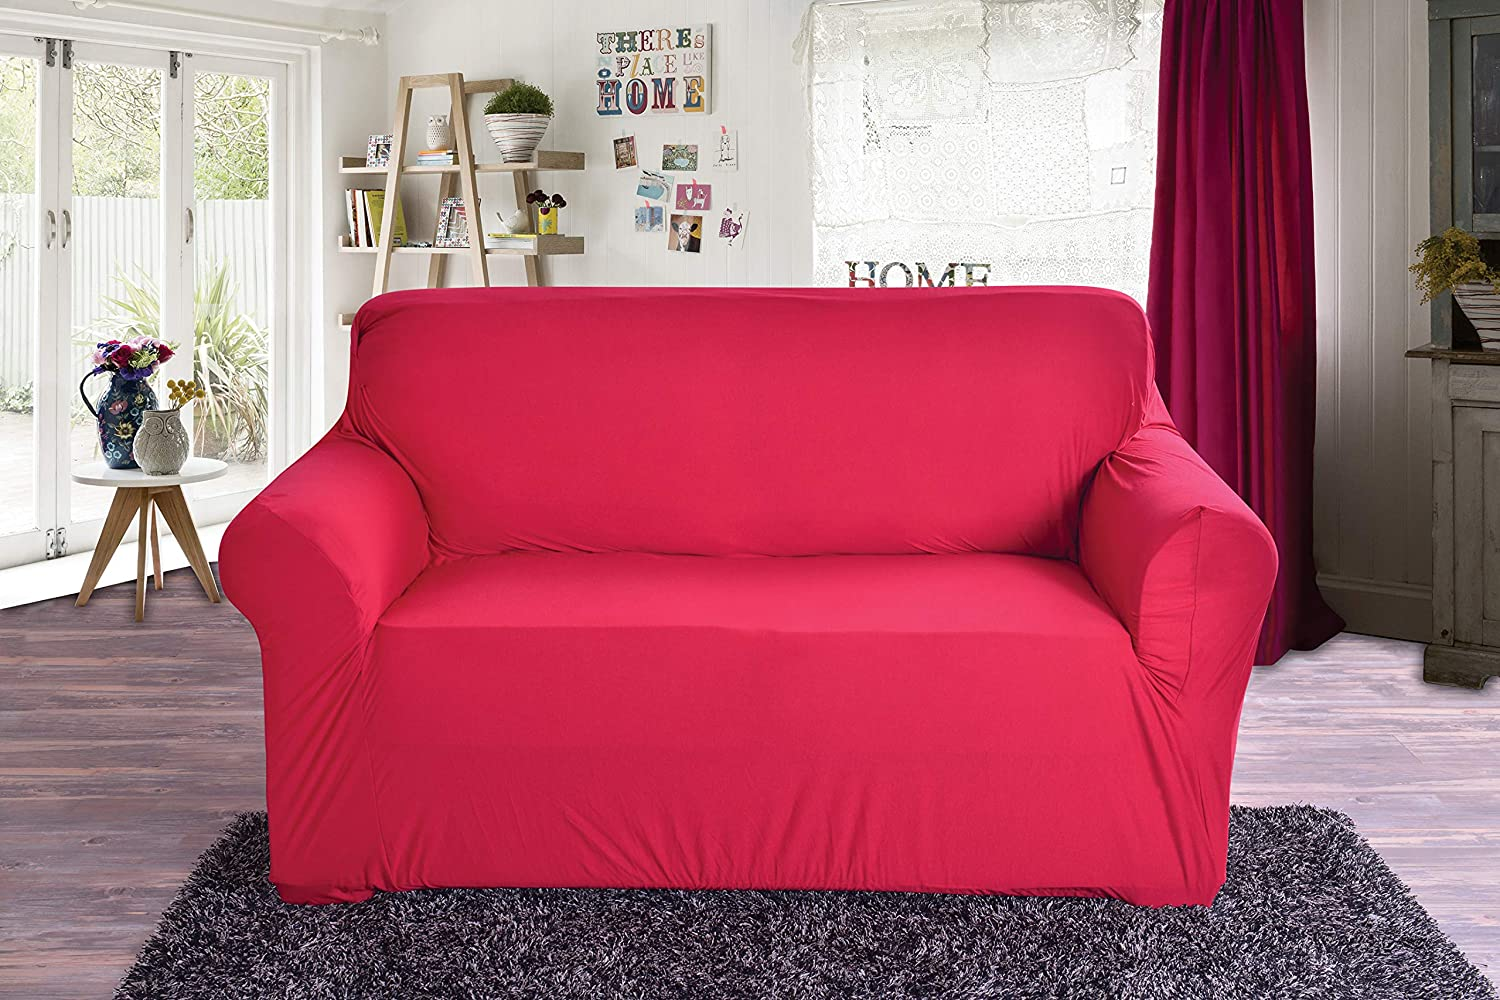 Elegant Comfort Collection Luxury Soft Furniture Jersey Stretch SLIPCOVER, Sofa Ruby